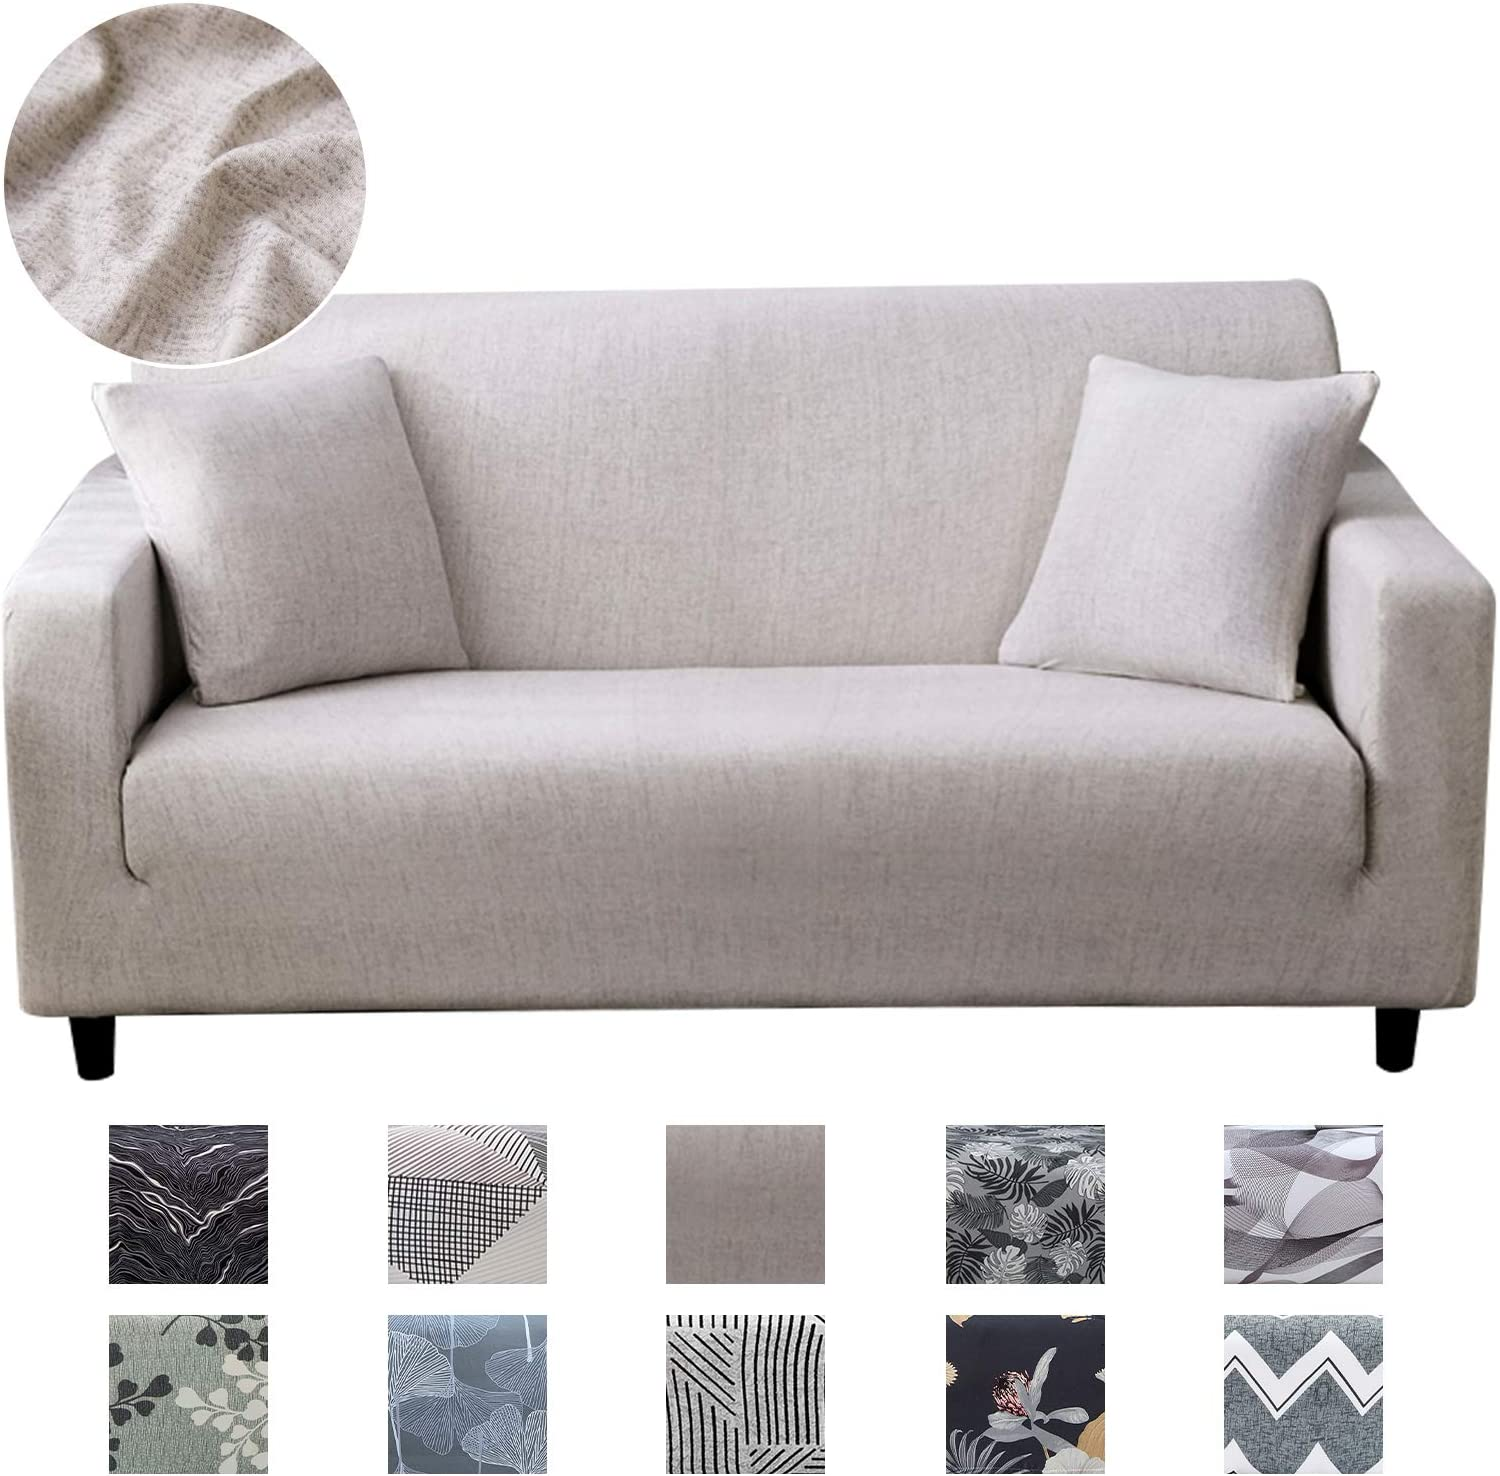 JOYDREAM Stretch 3 Seater Sofa Covers Elastic Sofa Slipcover Printed Couch Cover Universal Couch Slipcovers with 1 Pillowcase, not Solid Color: Kitchen & Dining